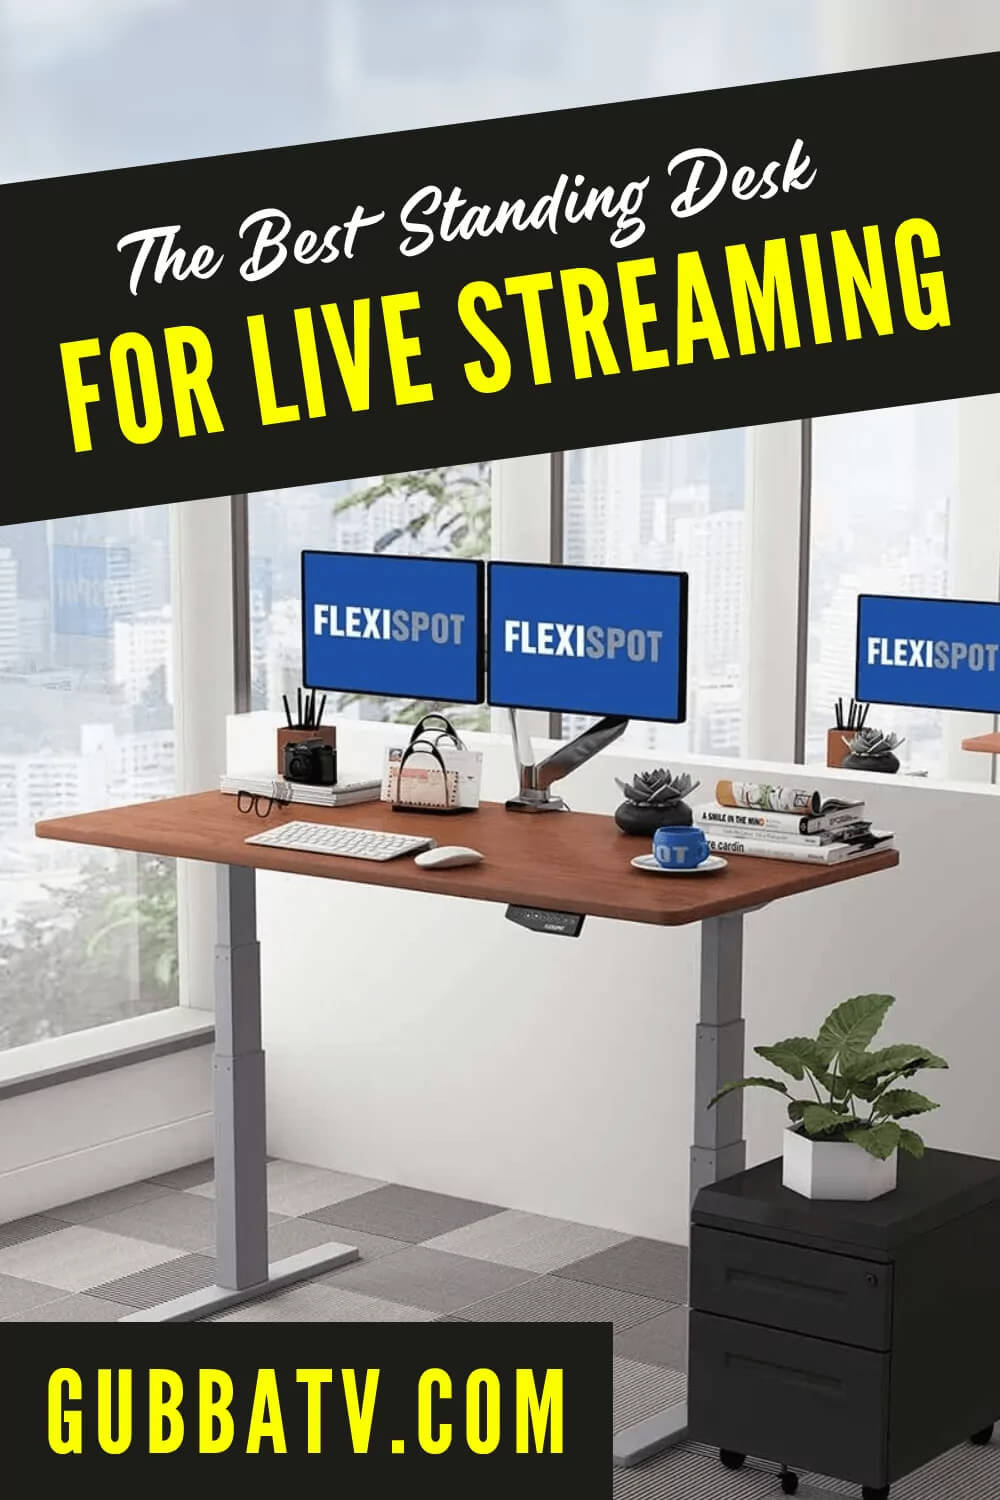 The Best Standing Desk For Home Office / Live Streaming